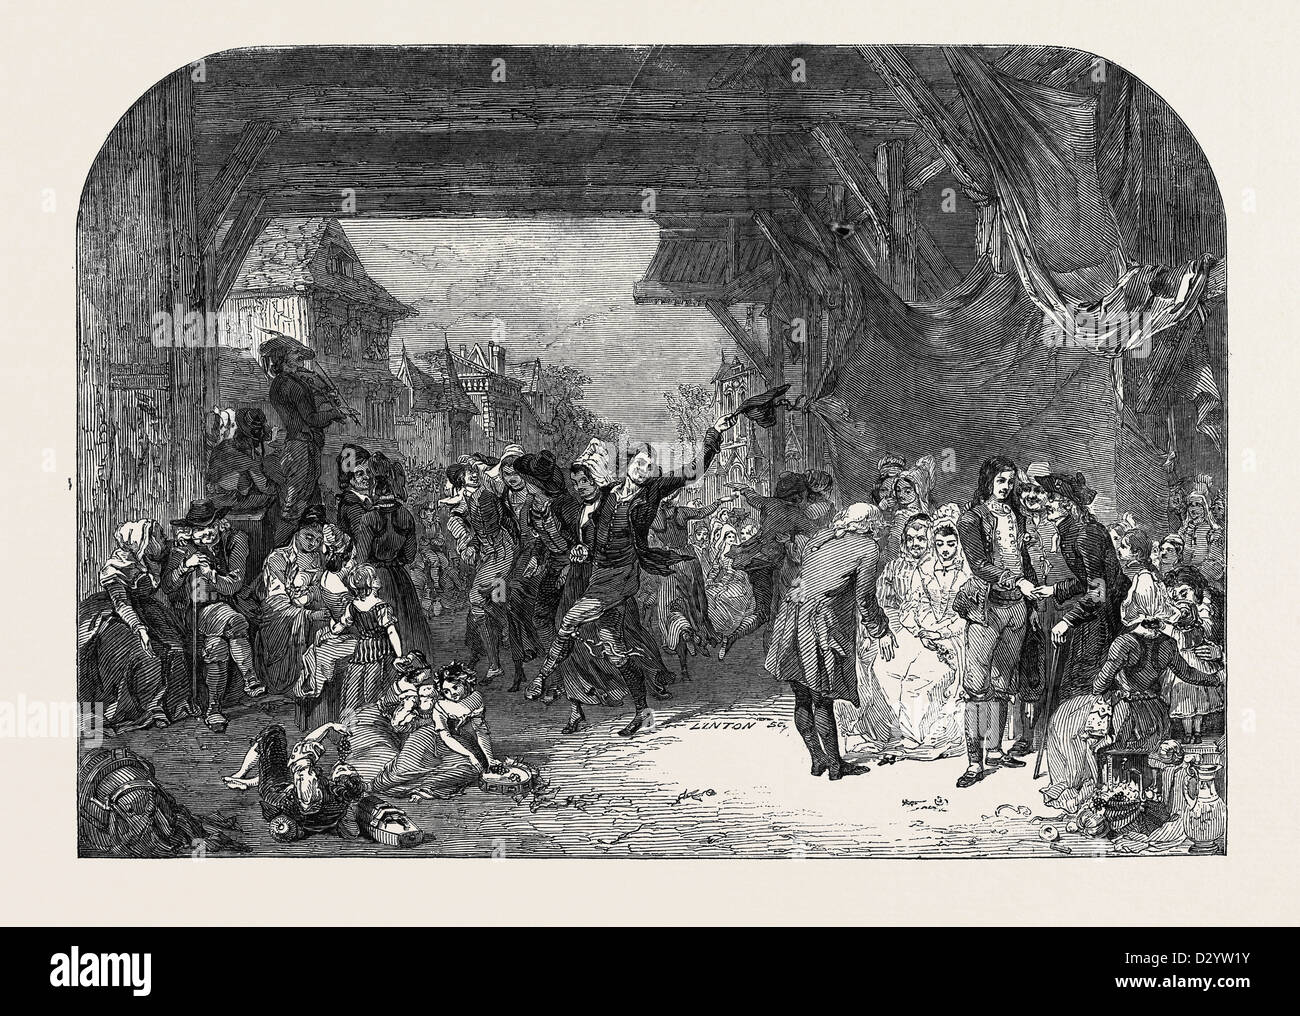 LA FETE DE MARIAGE. PAINTED BY GOODALL - Stock Image